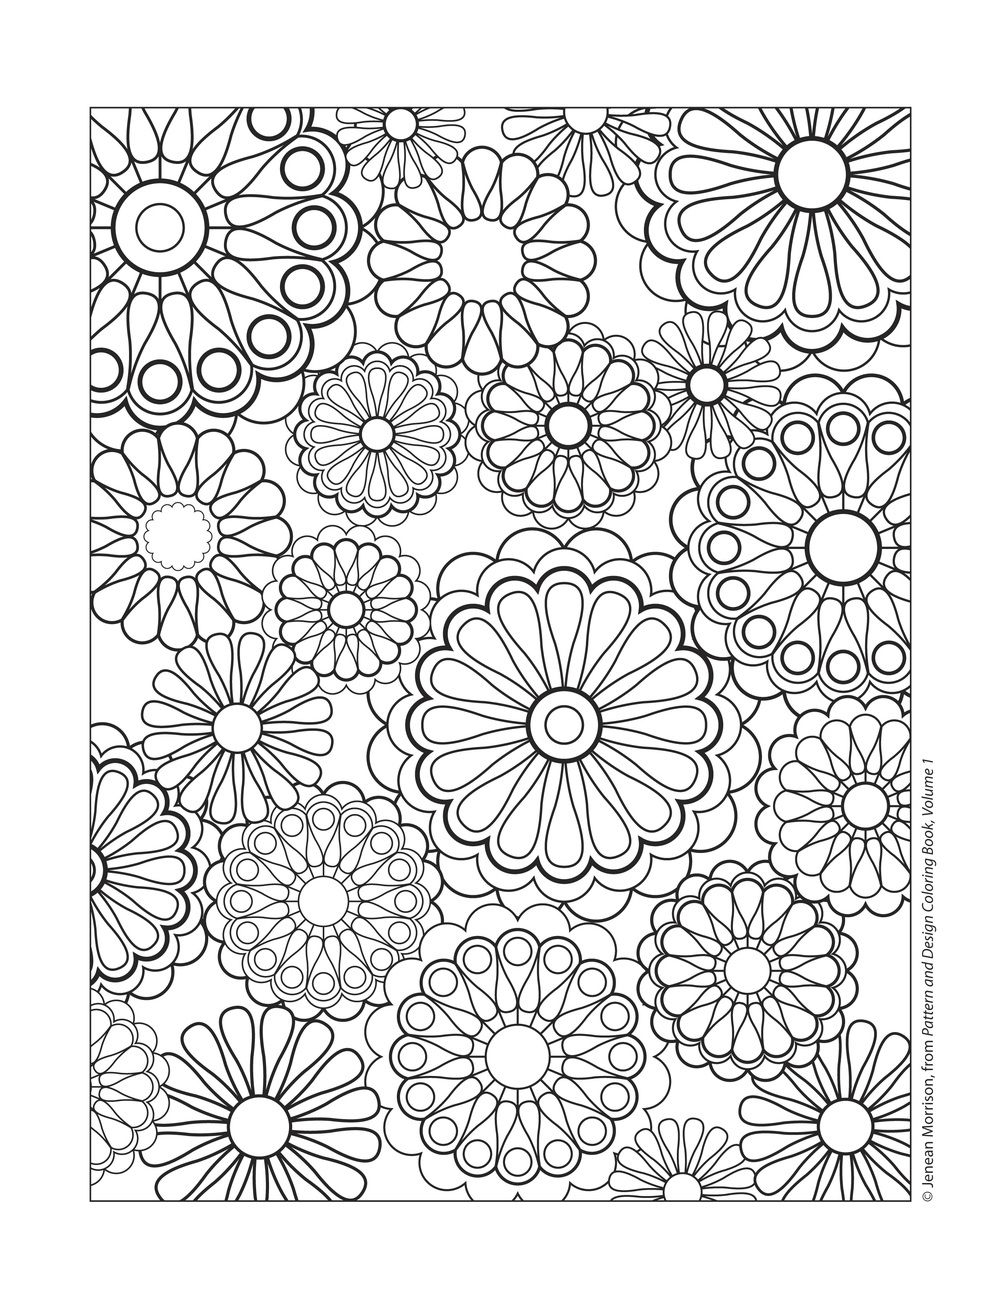 mindware coloring pages free Download-Design Patterns Coloring Pages Free coloring pages 20-j